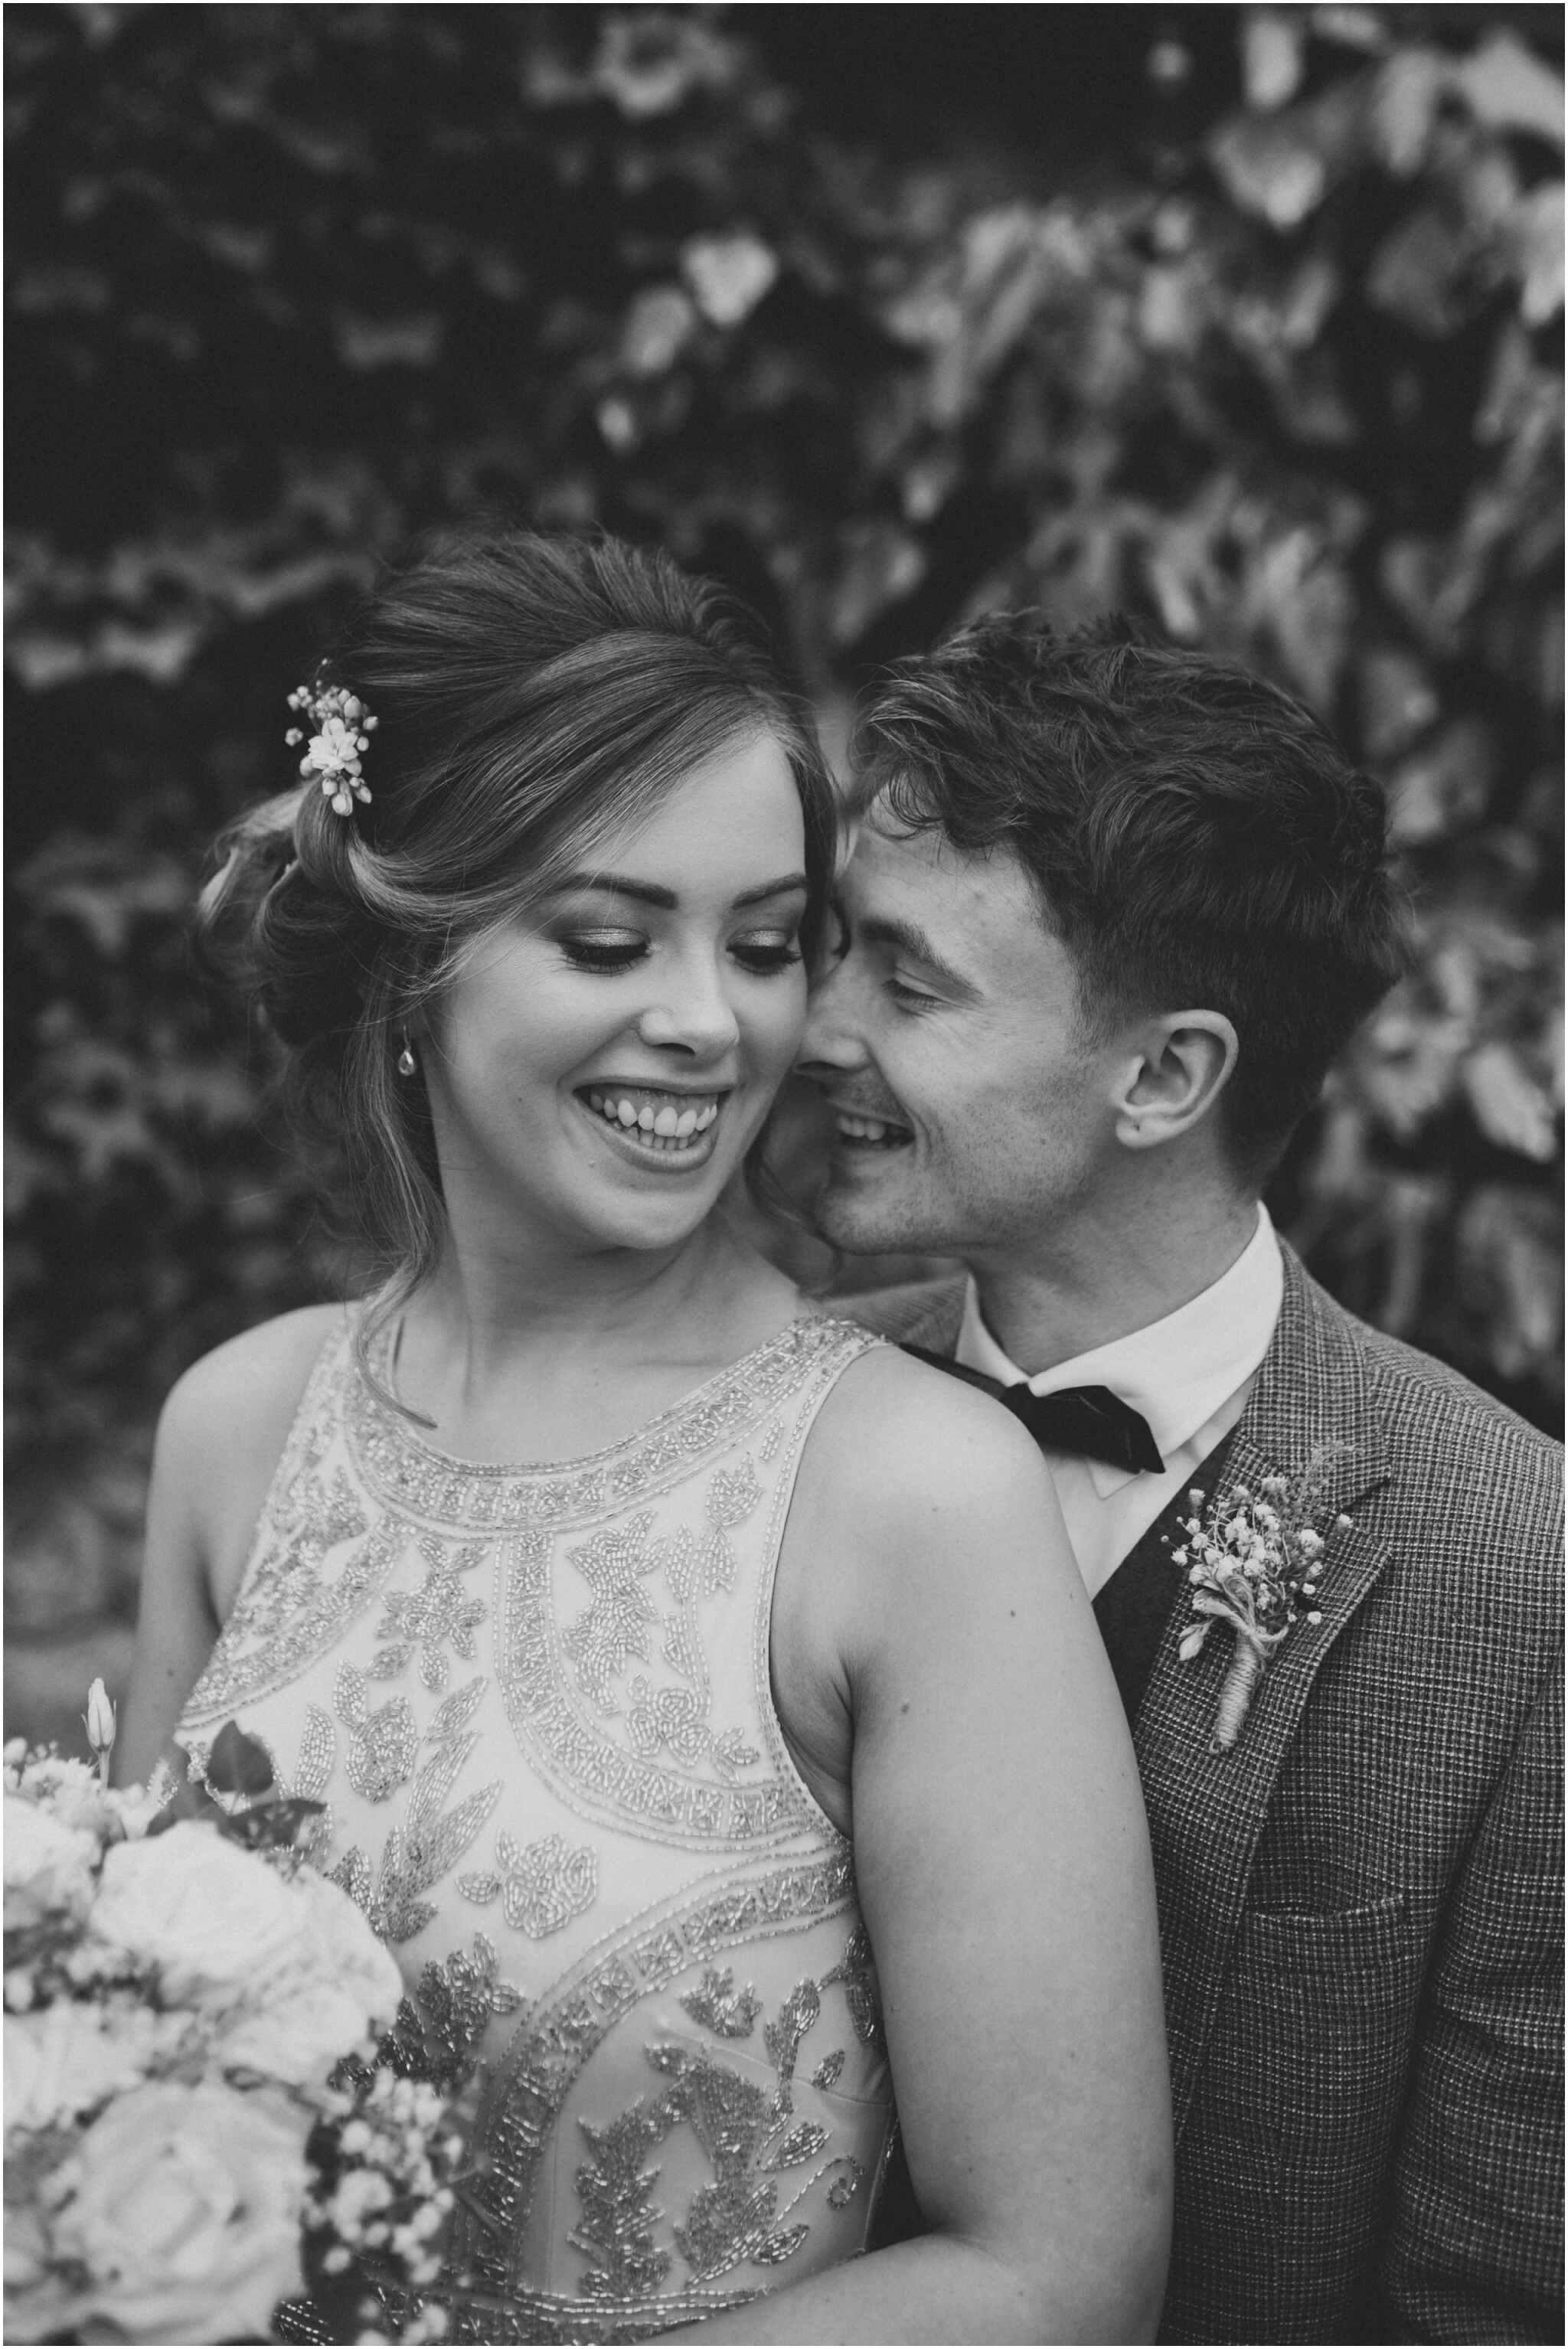 Barberstown castle Ireland Irish Castle Wedding00062 - Fun and Relaxed wedding and elopement photography in Ireland, perfect for adventurous and outdoorsy couples